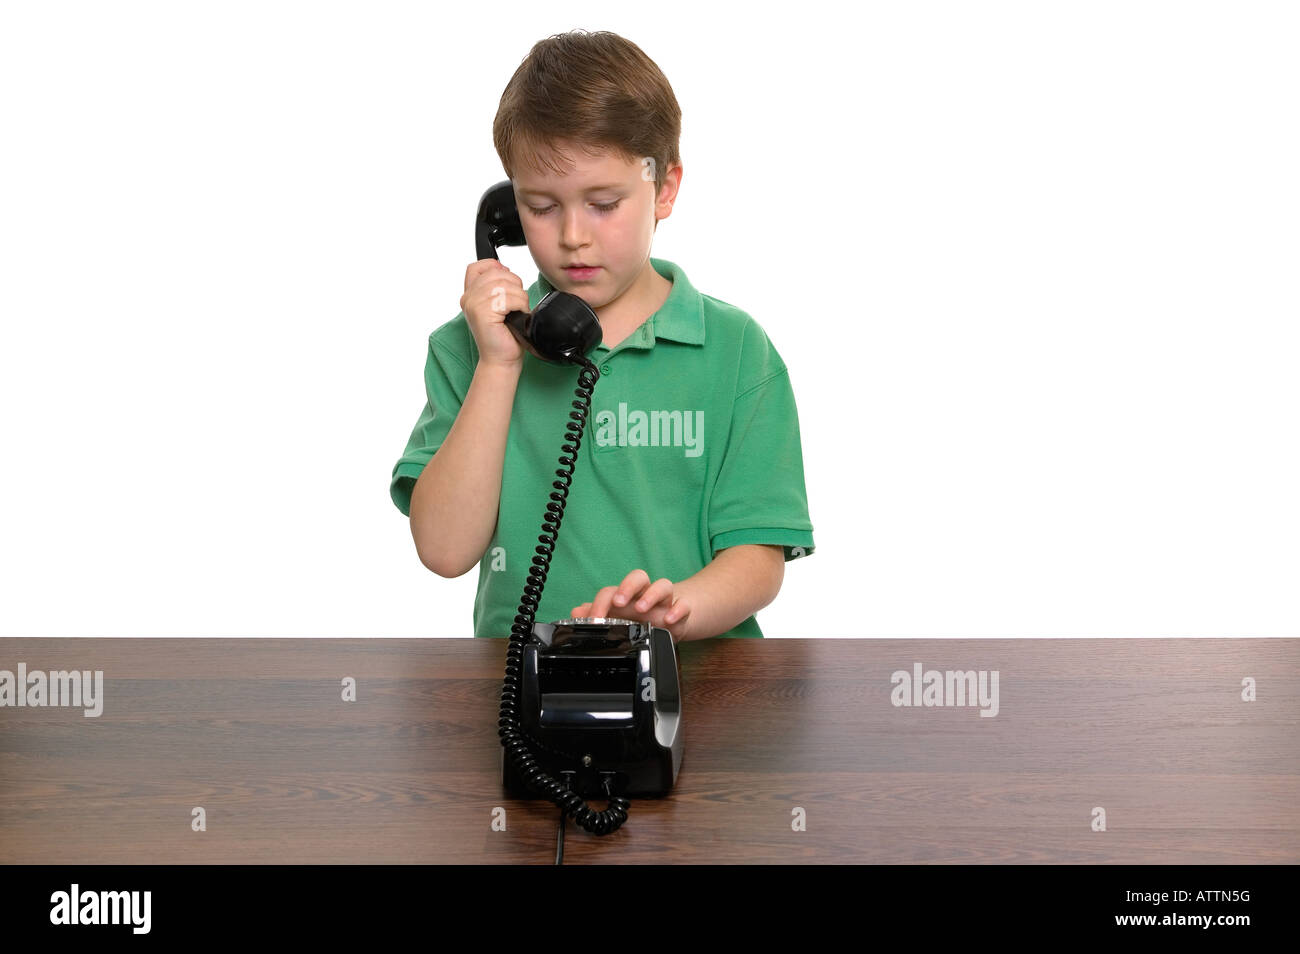 Young boy dialling a number on a retro telephone white background - Stock Image